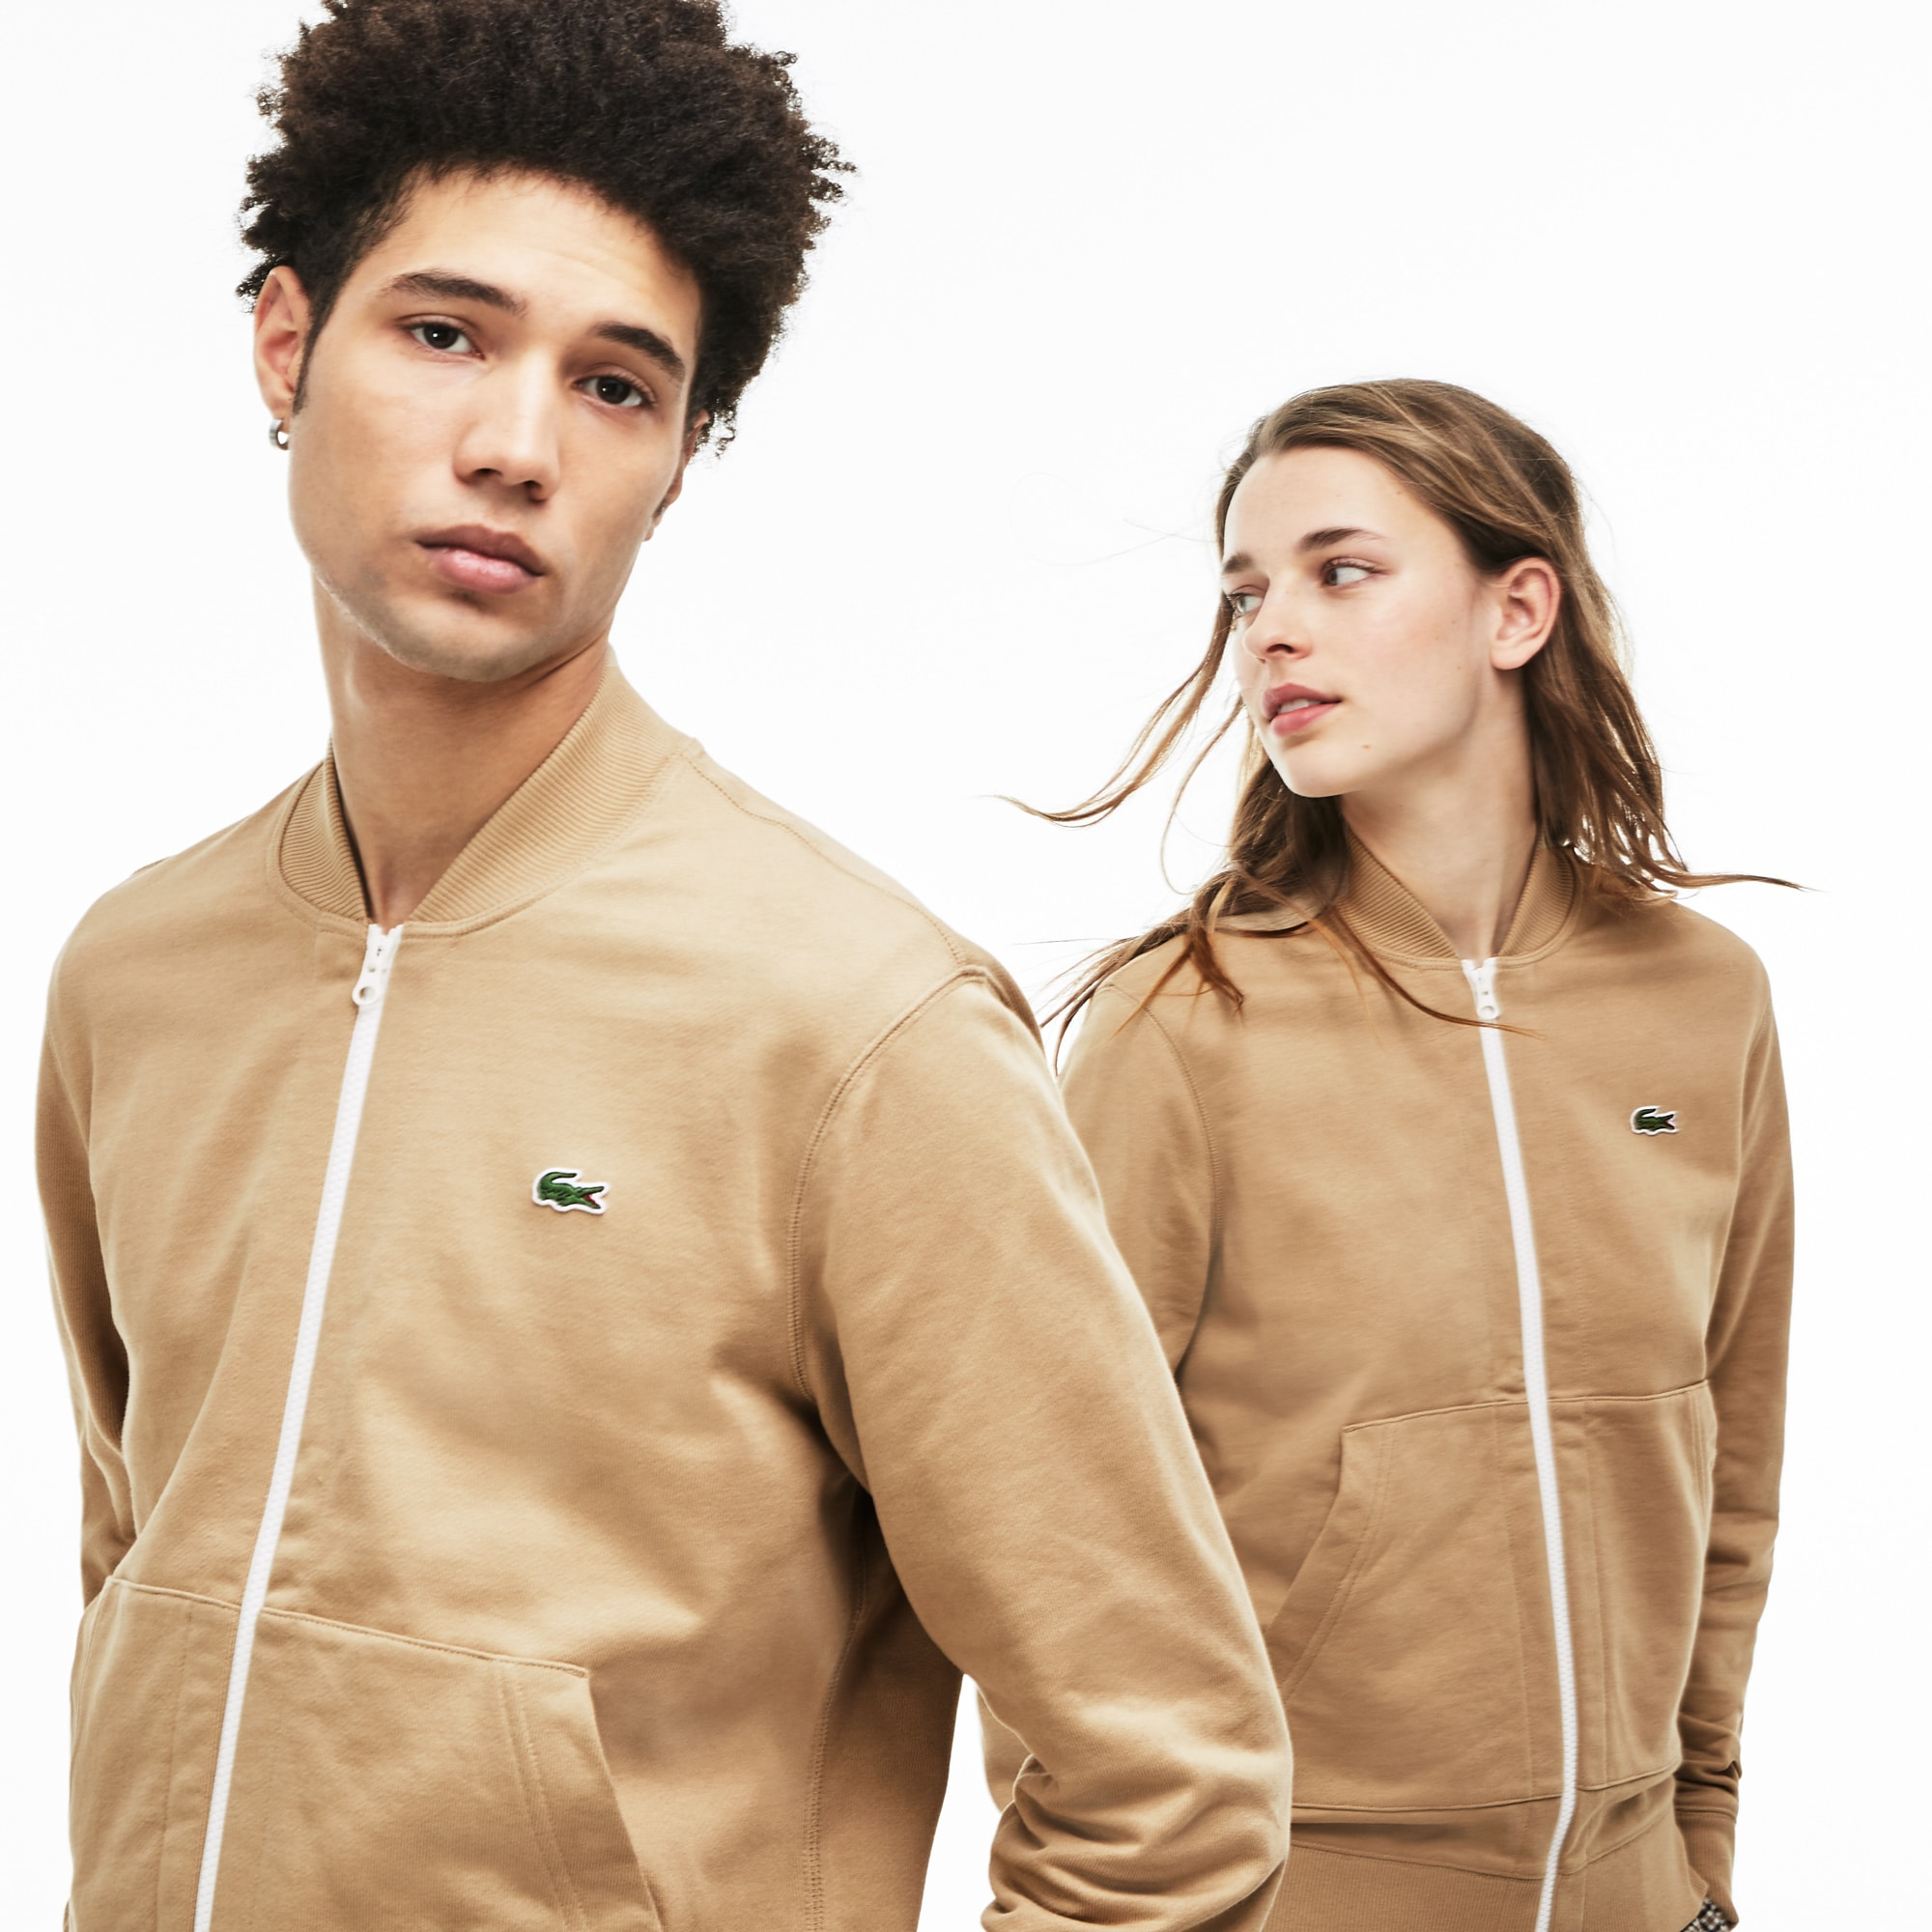 Unisex Lacoste LIVE Teddy Neck Zip Fleece Sweatshirt